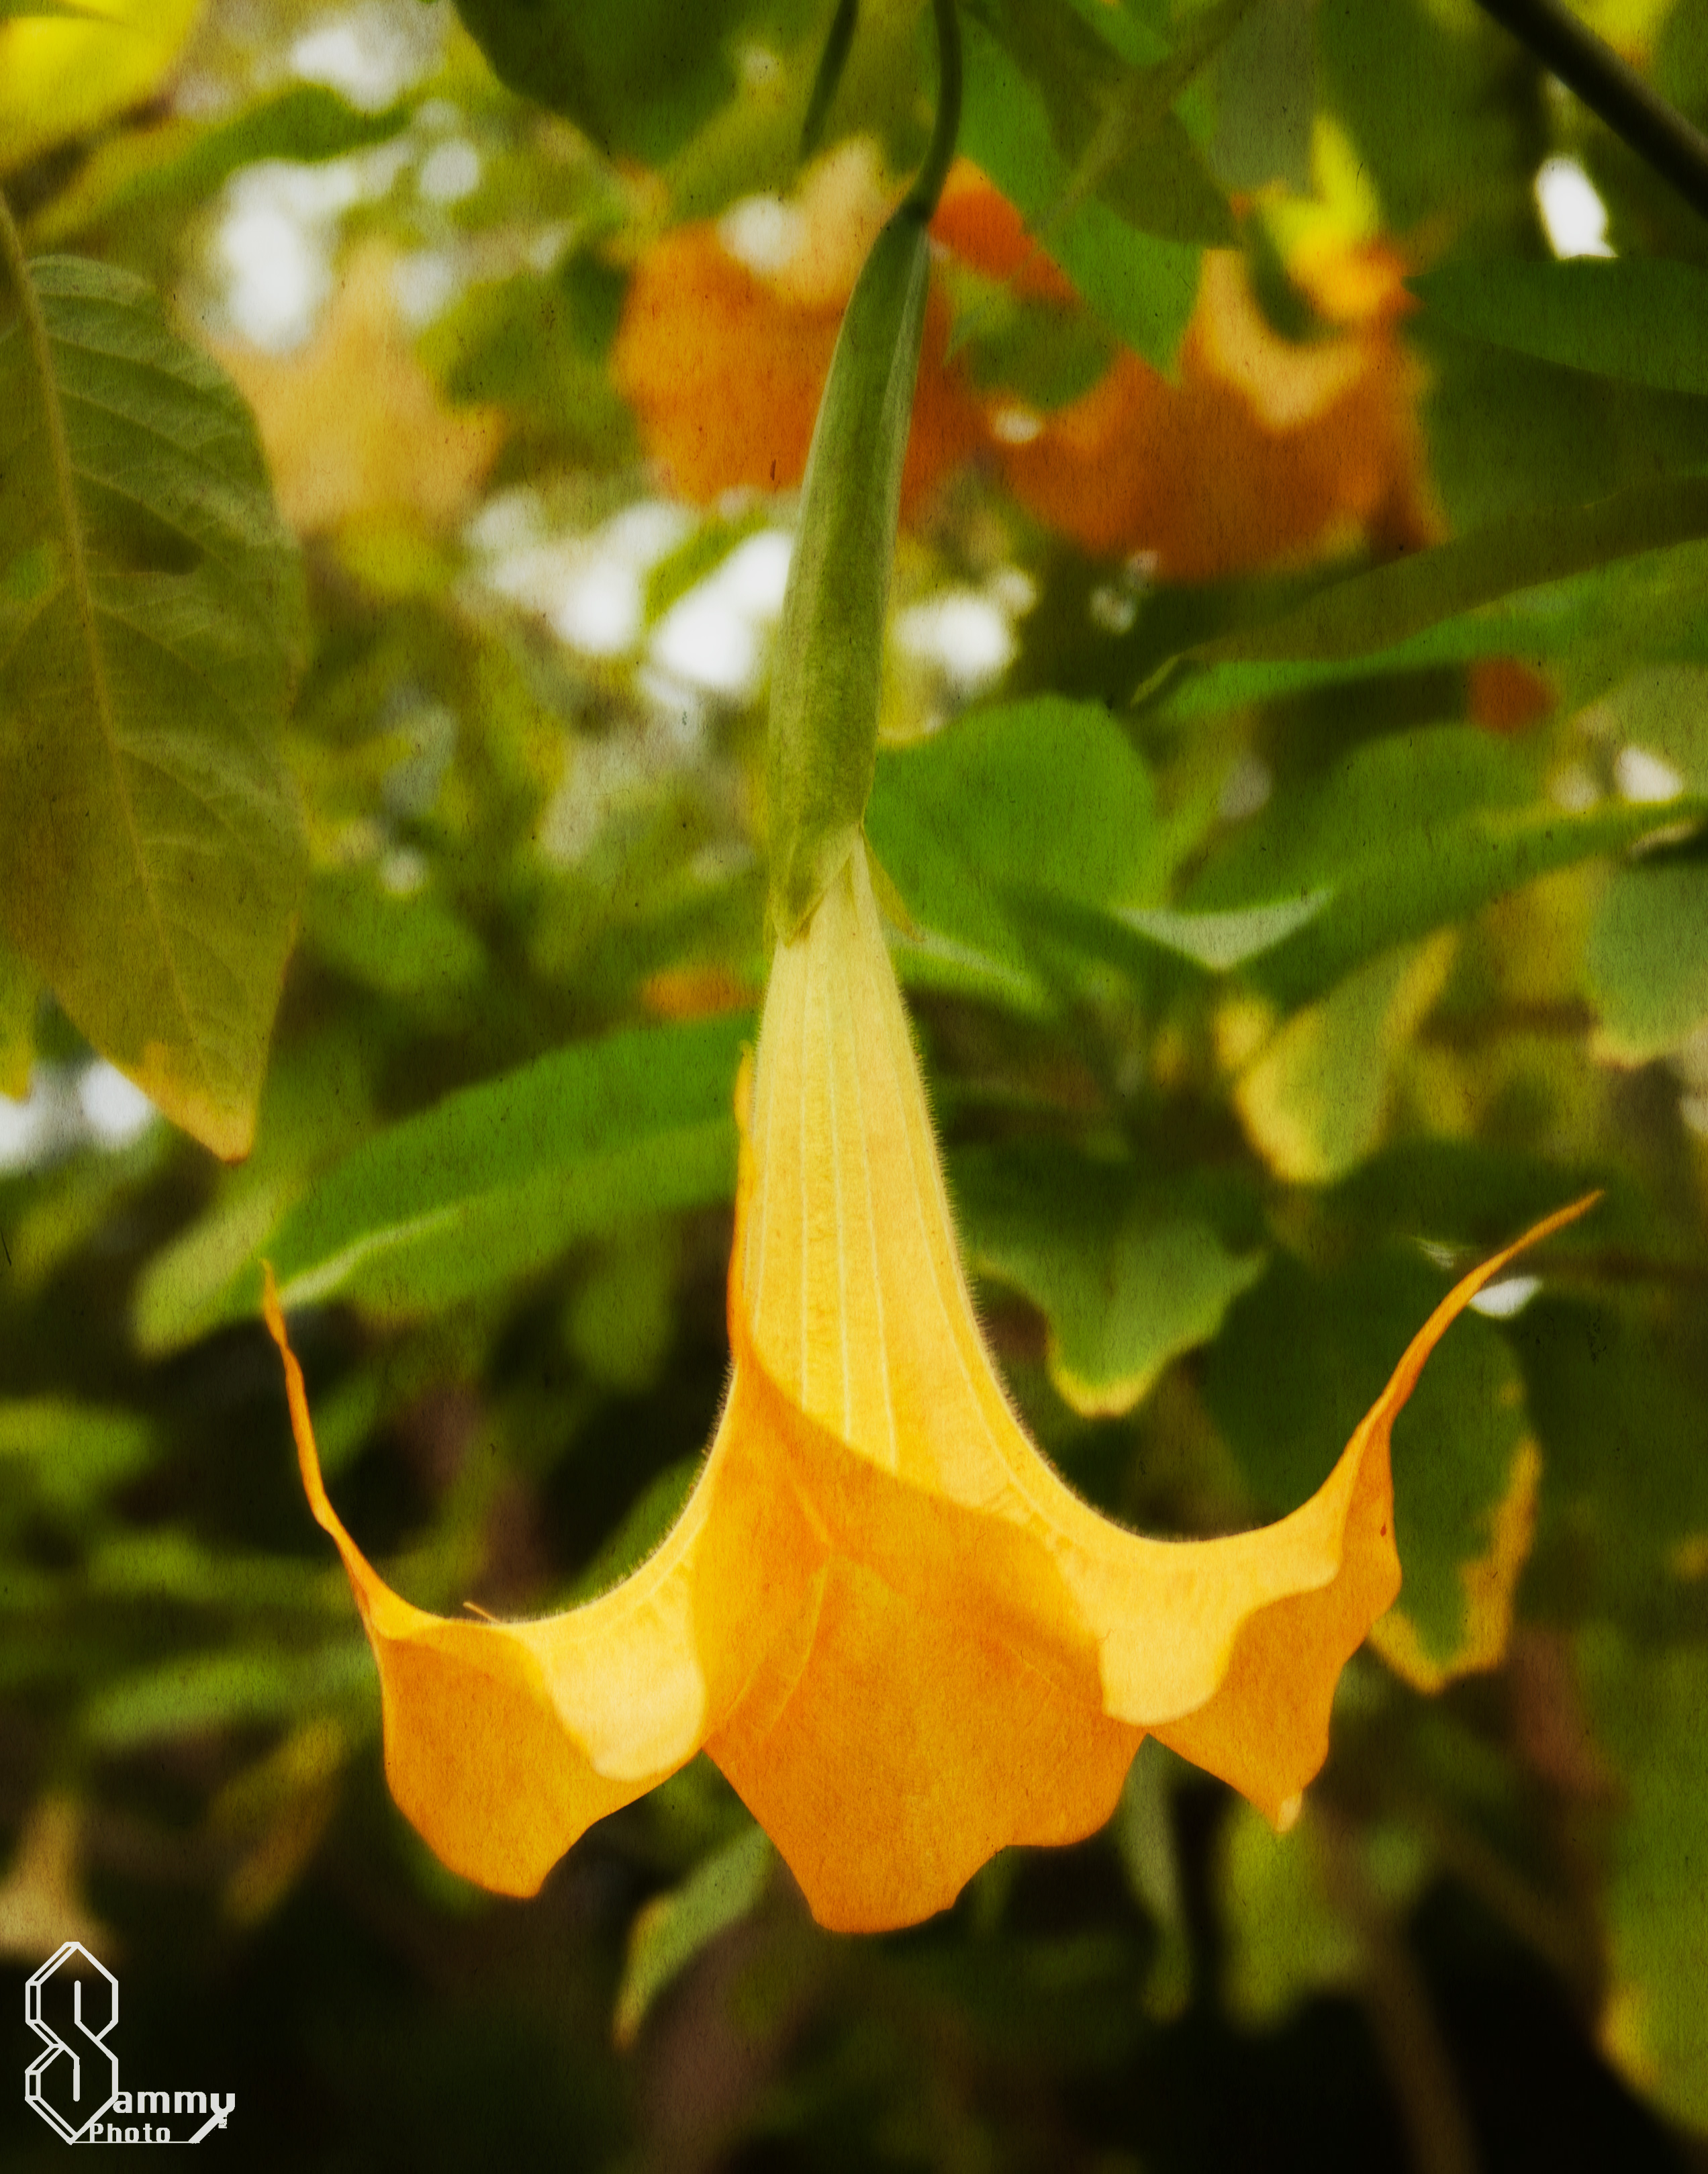 Yellow flower sammy photo page 2 angels trumpets are beautiful big yellow flowers i love the shape of the brugmansia flower mightylinksfo